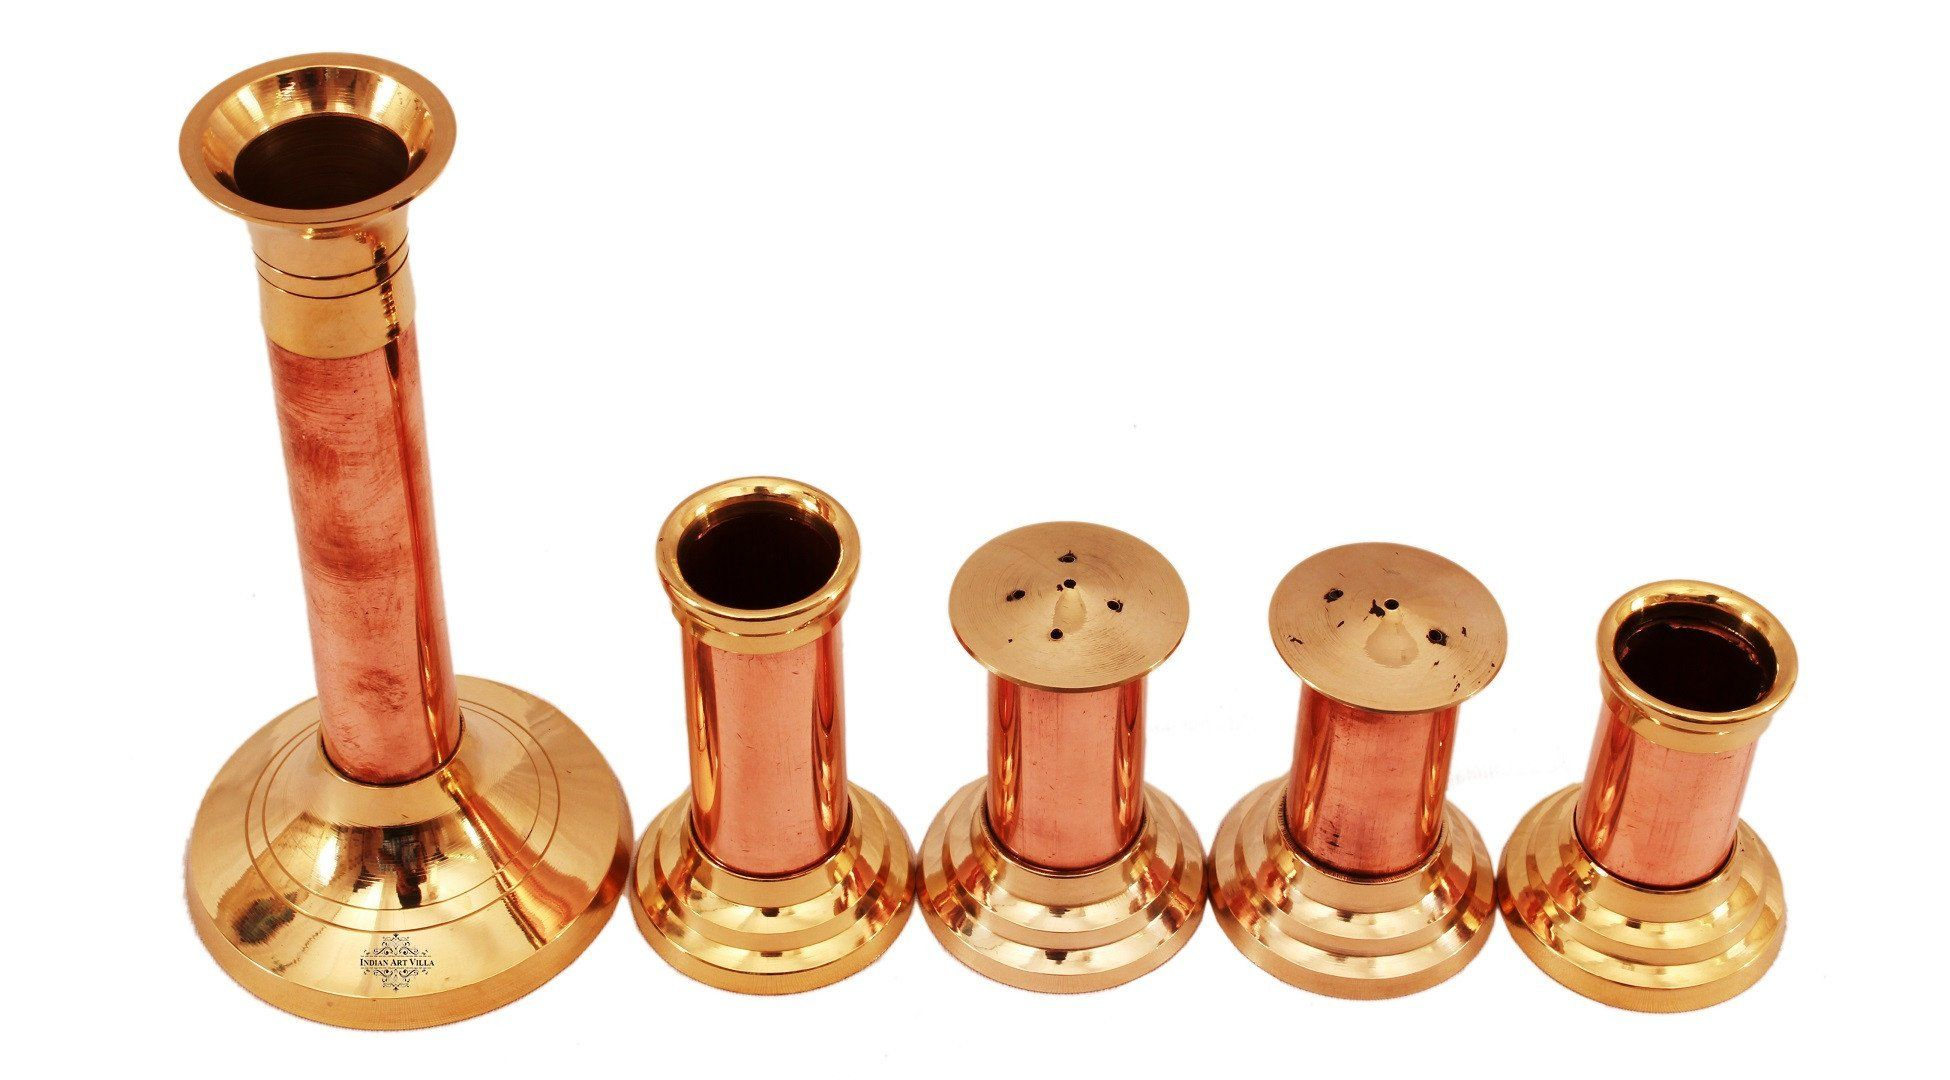 Copper Brass Set of Salt Pepper Shaker